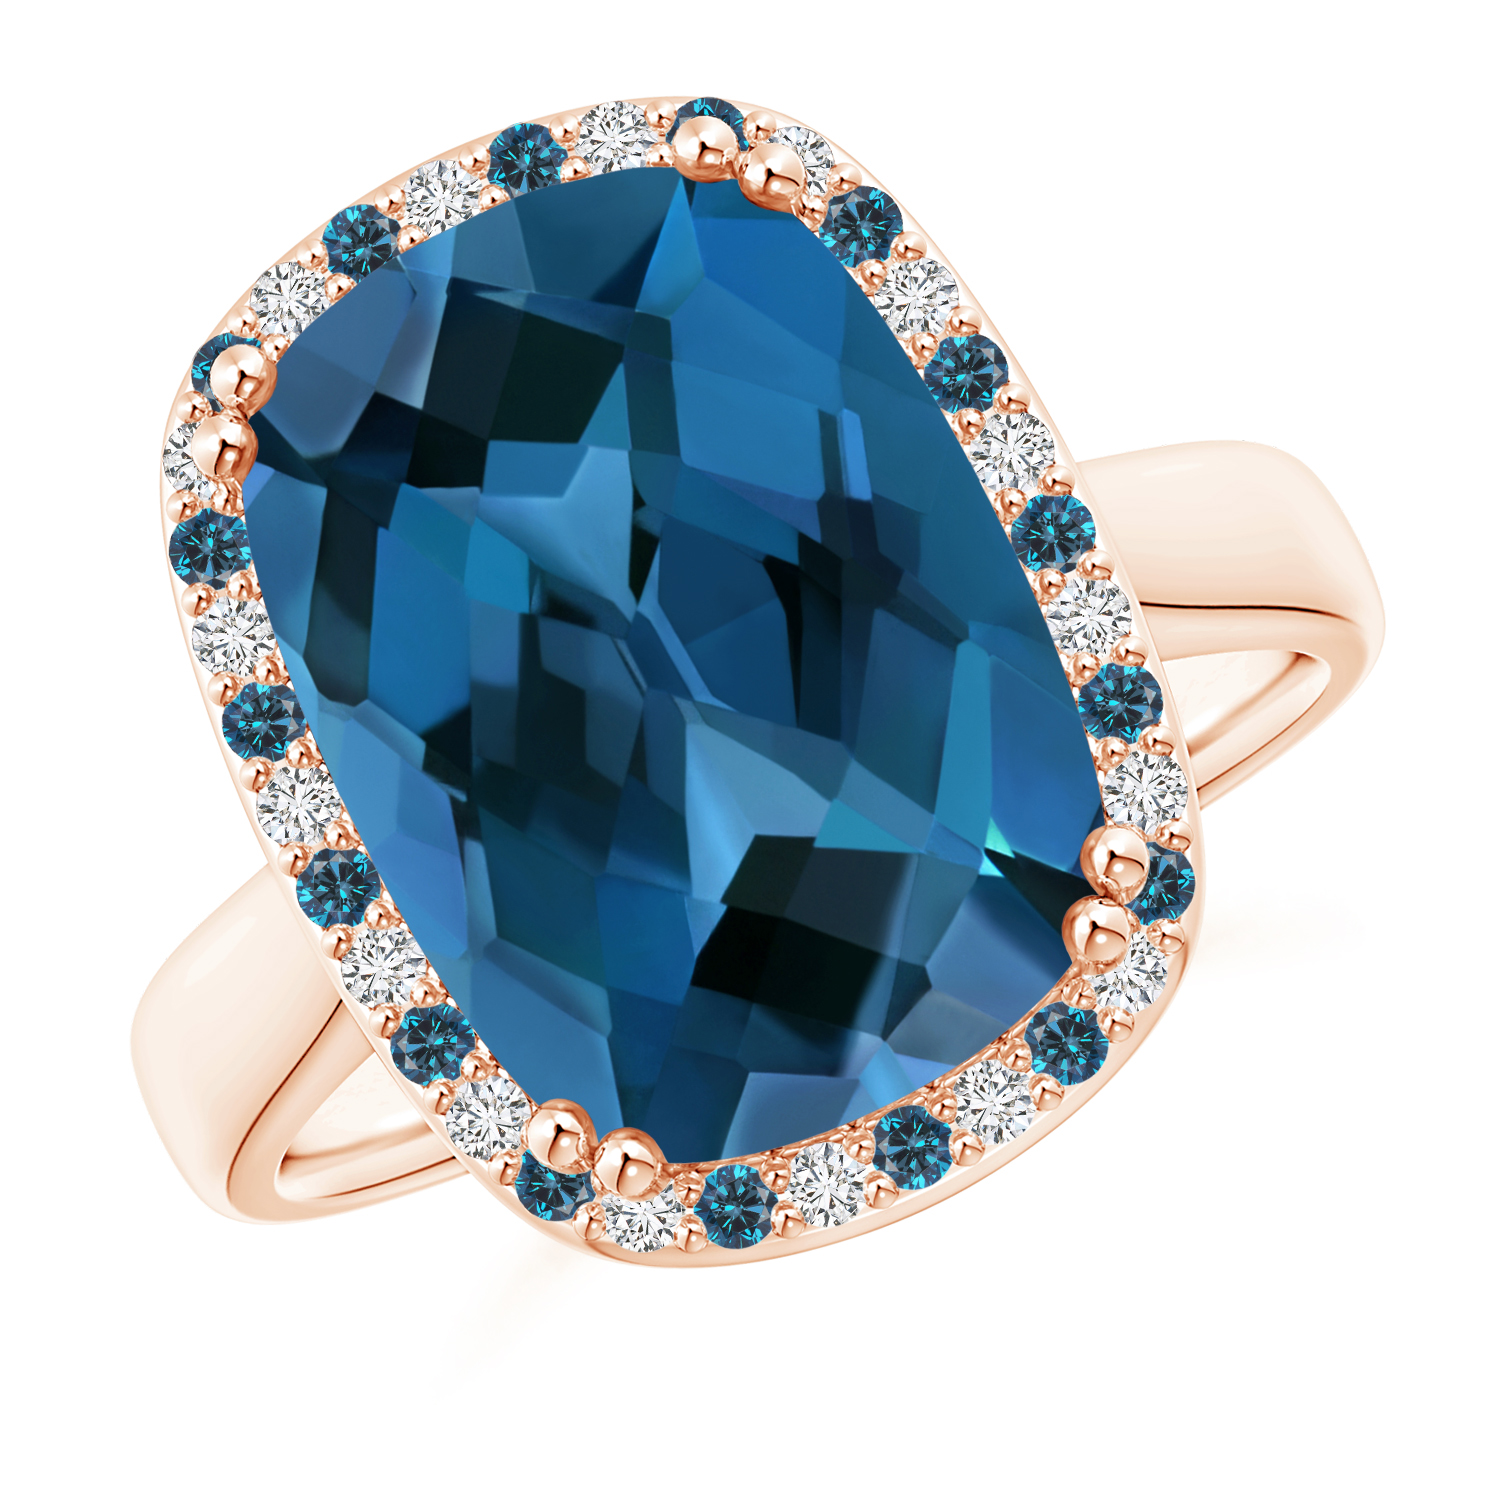 Cushion London Blue Topaz Cocktail Ring with Alternating Halo - Angara.com